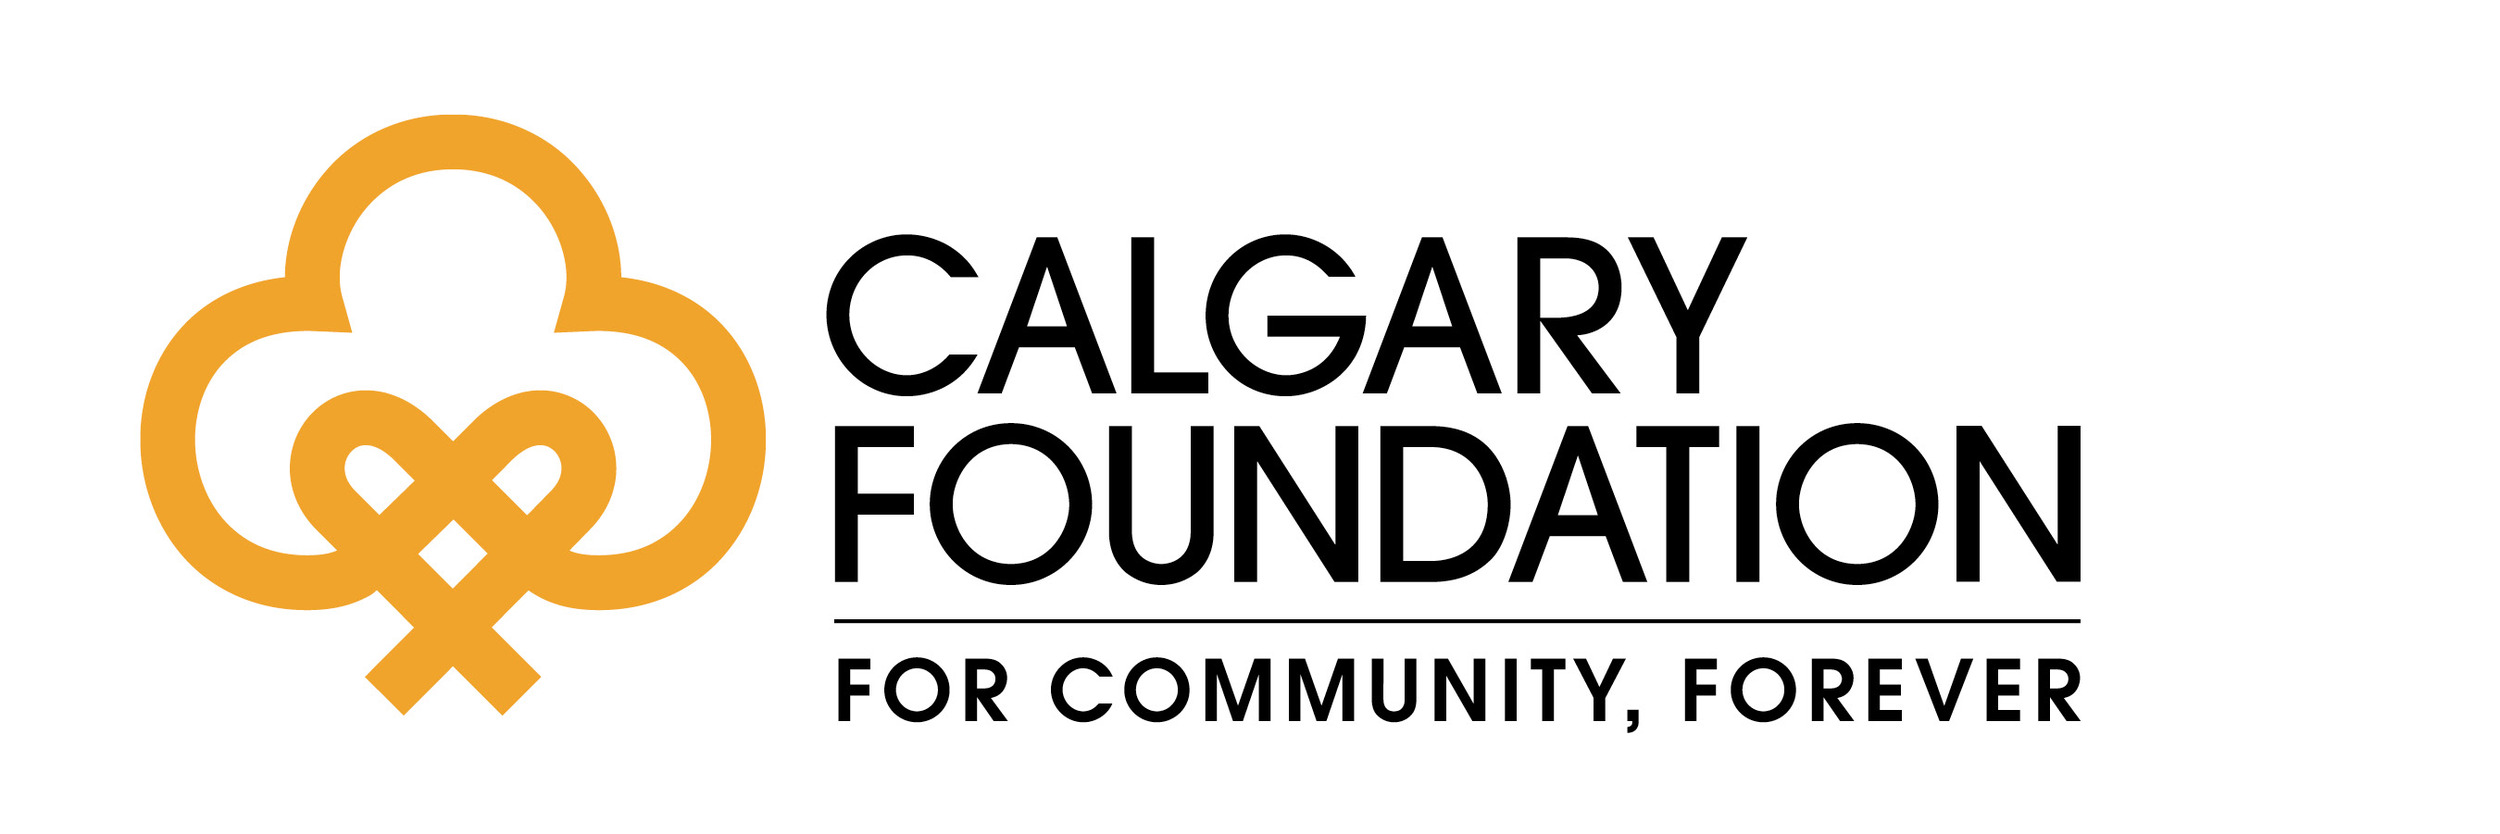 2016 PLATINUM SPONSOR: Calgary Foundation